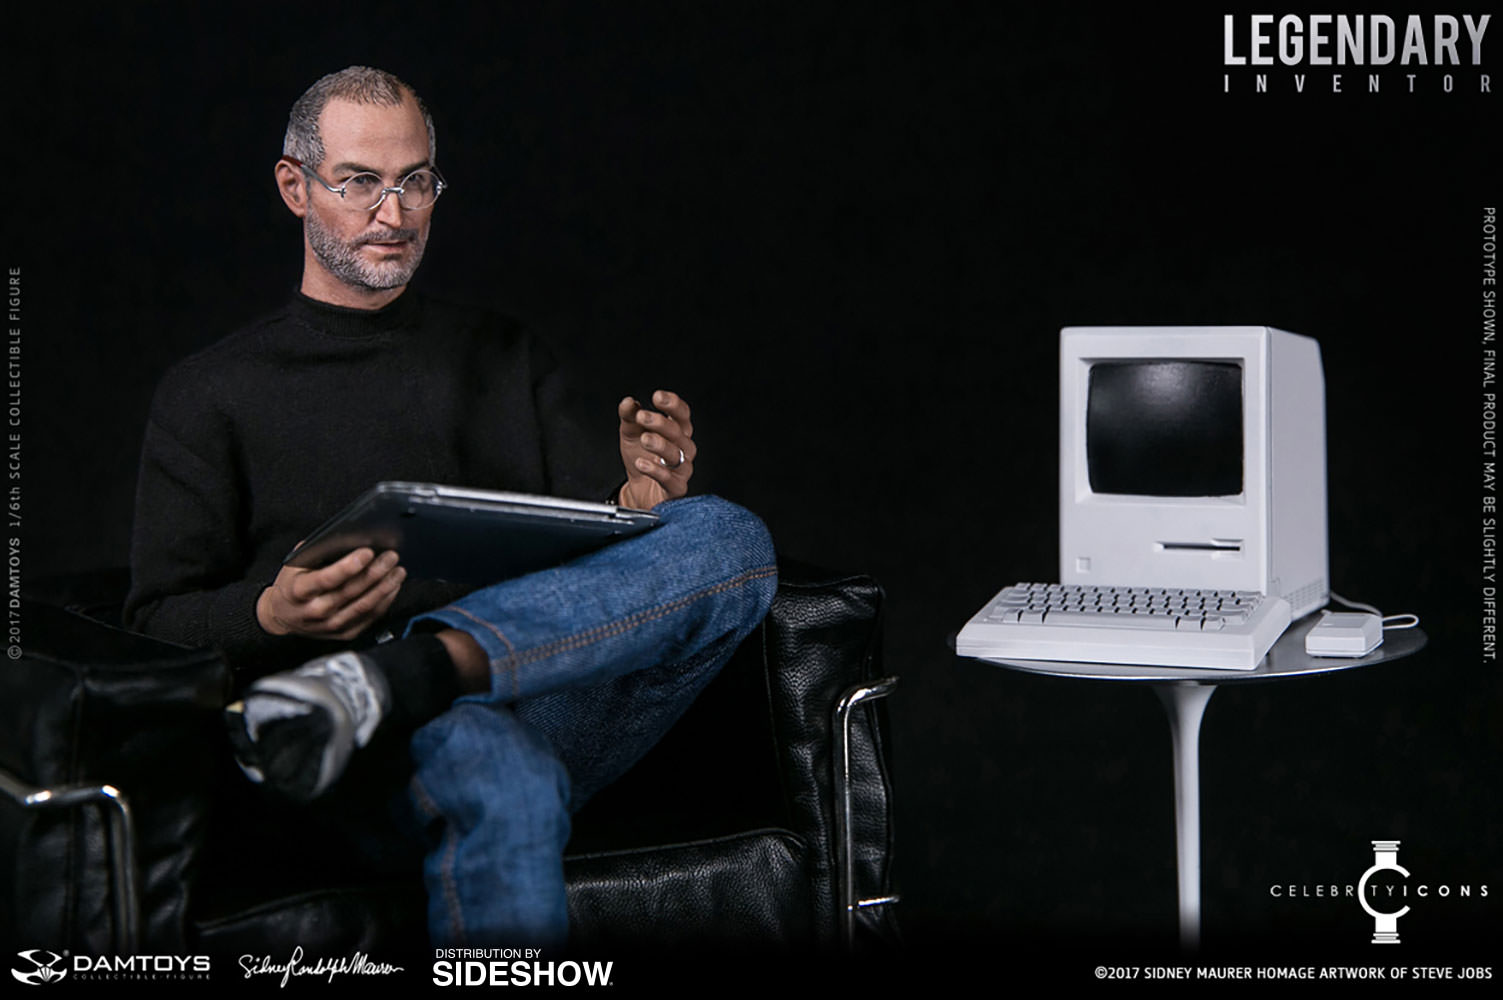 Steve Jobs Legendary Inventor Sixth Scale Figure